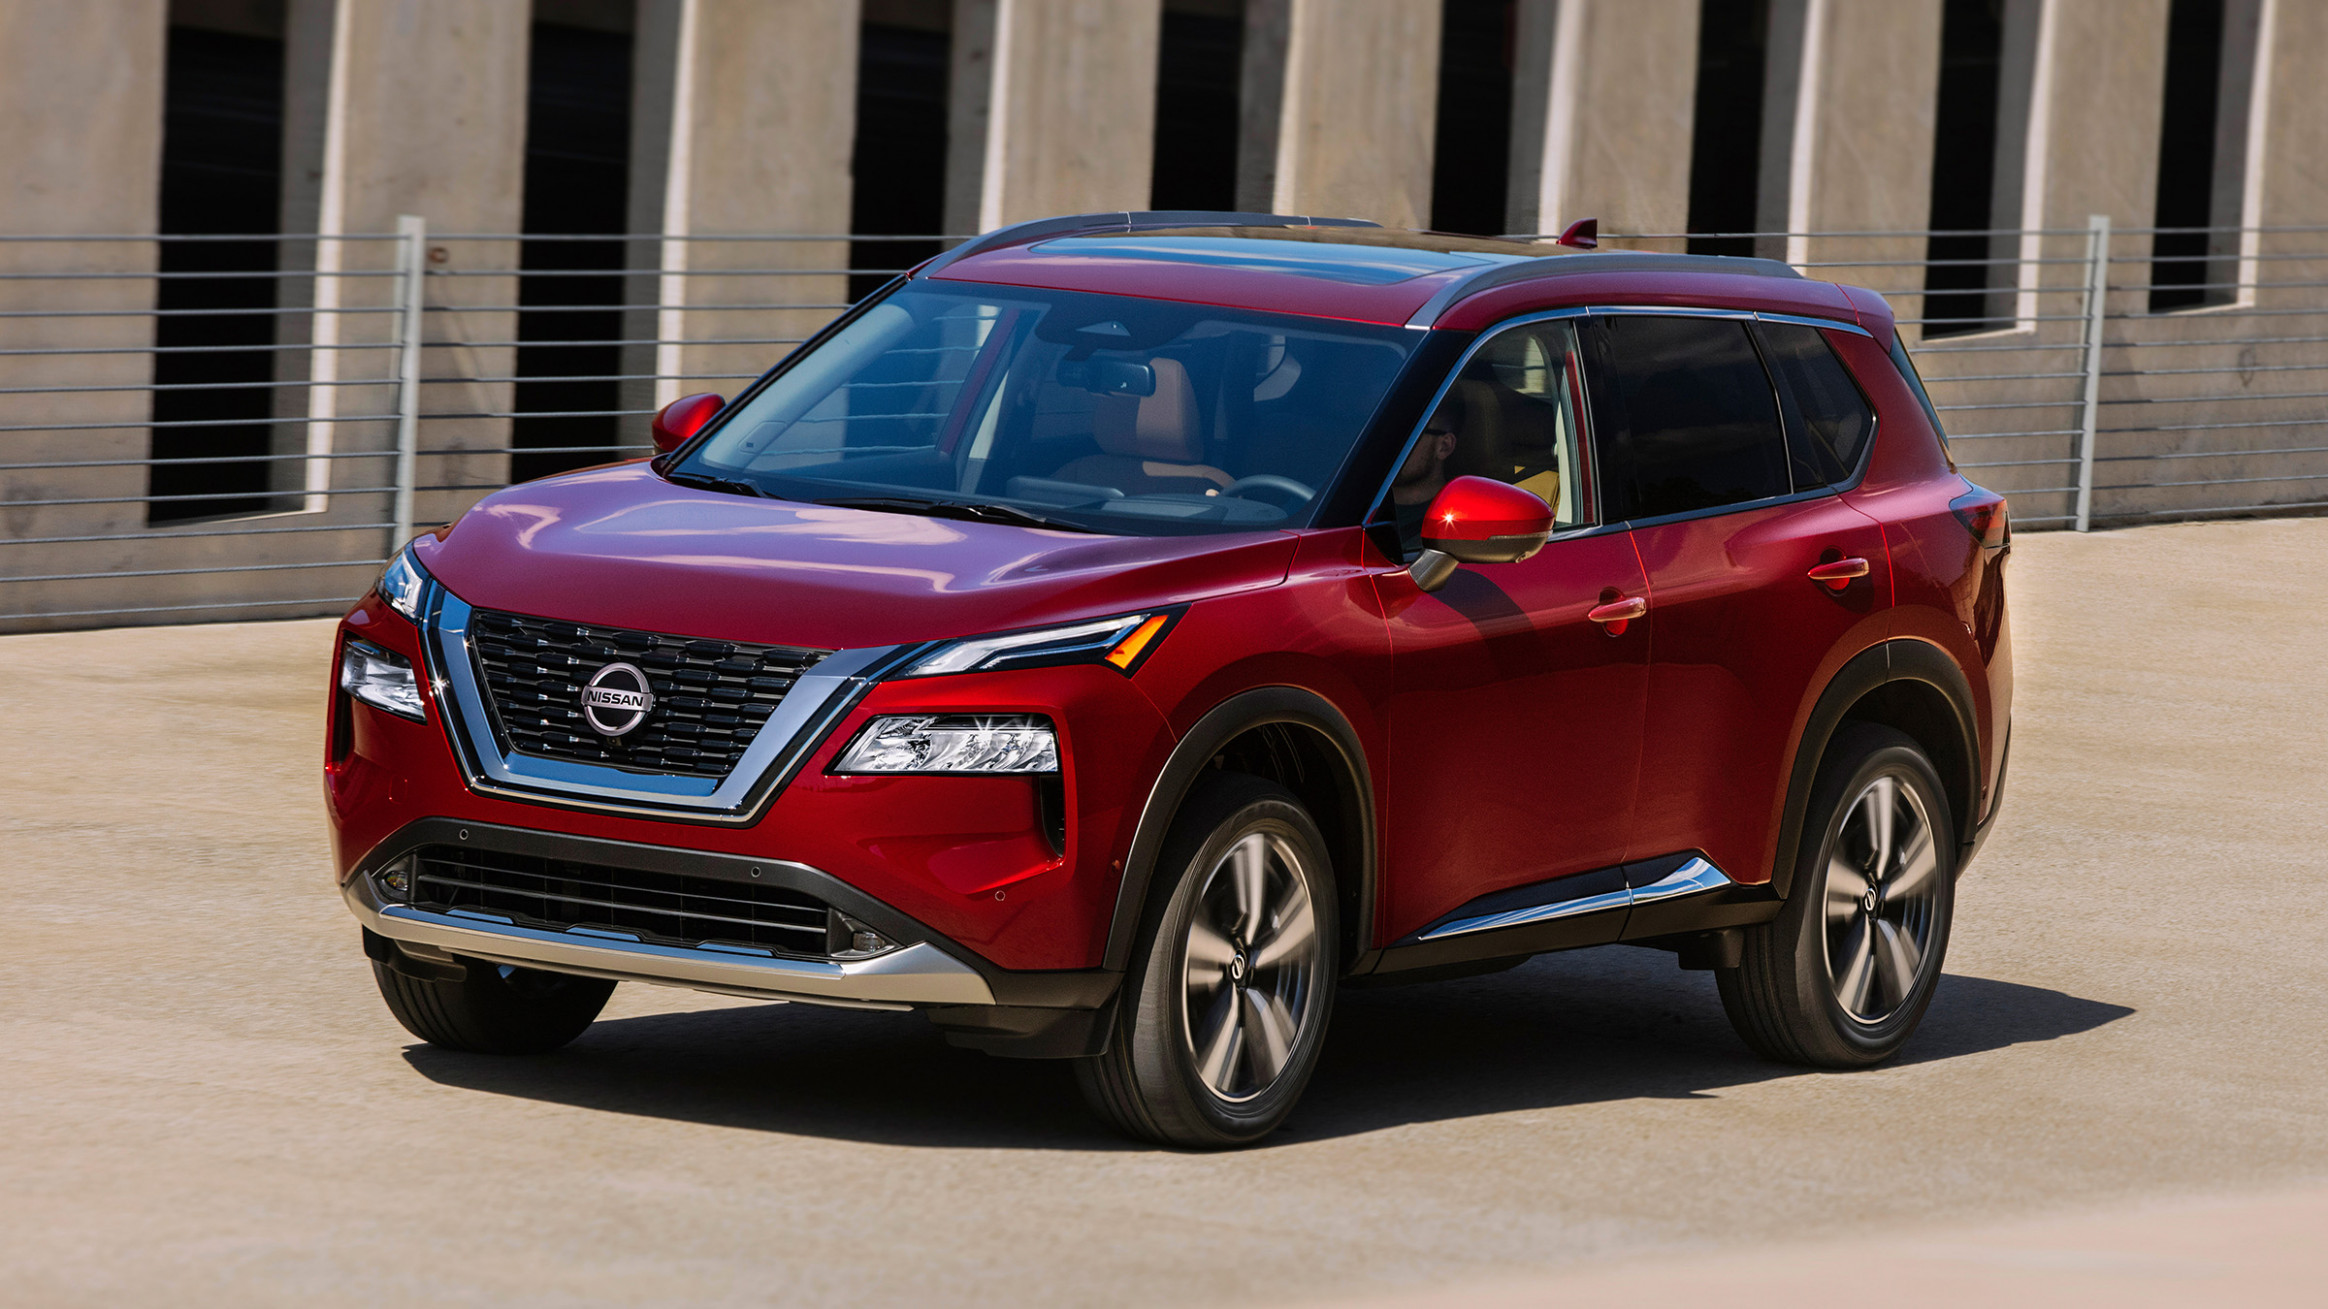 Prices 2022 Nissan Rogue Hybrid